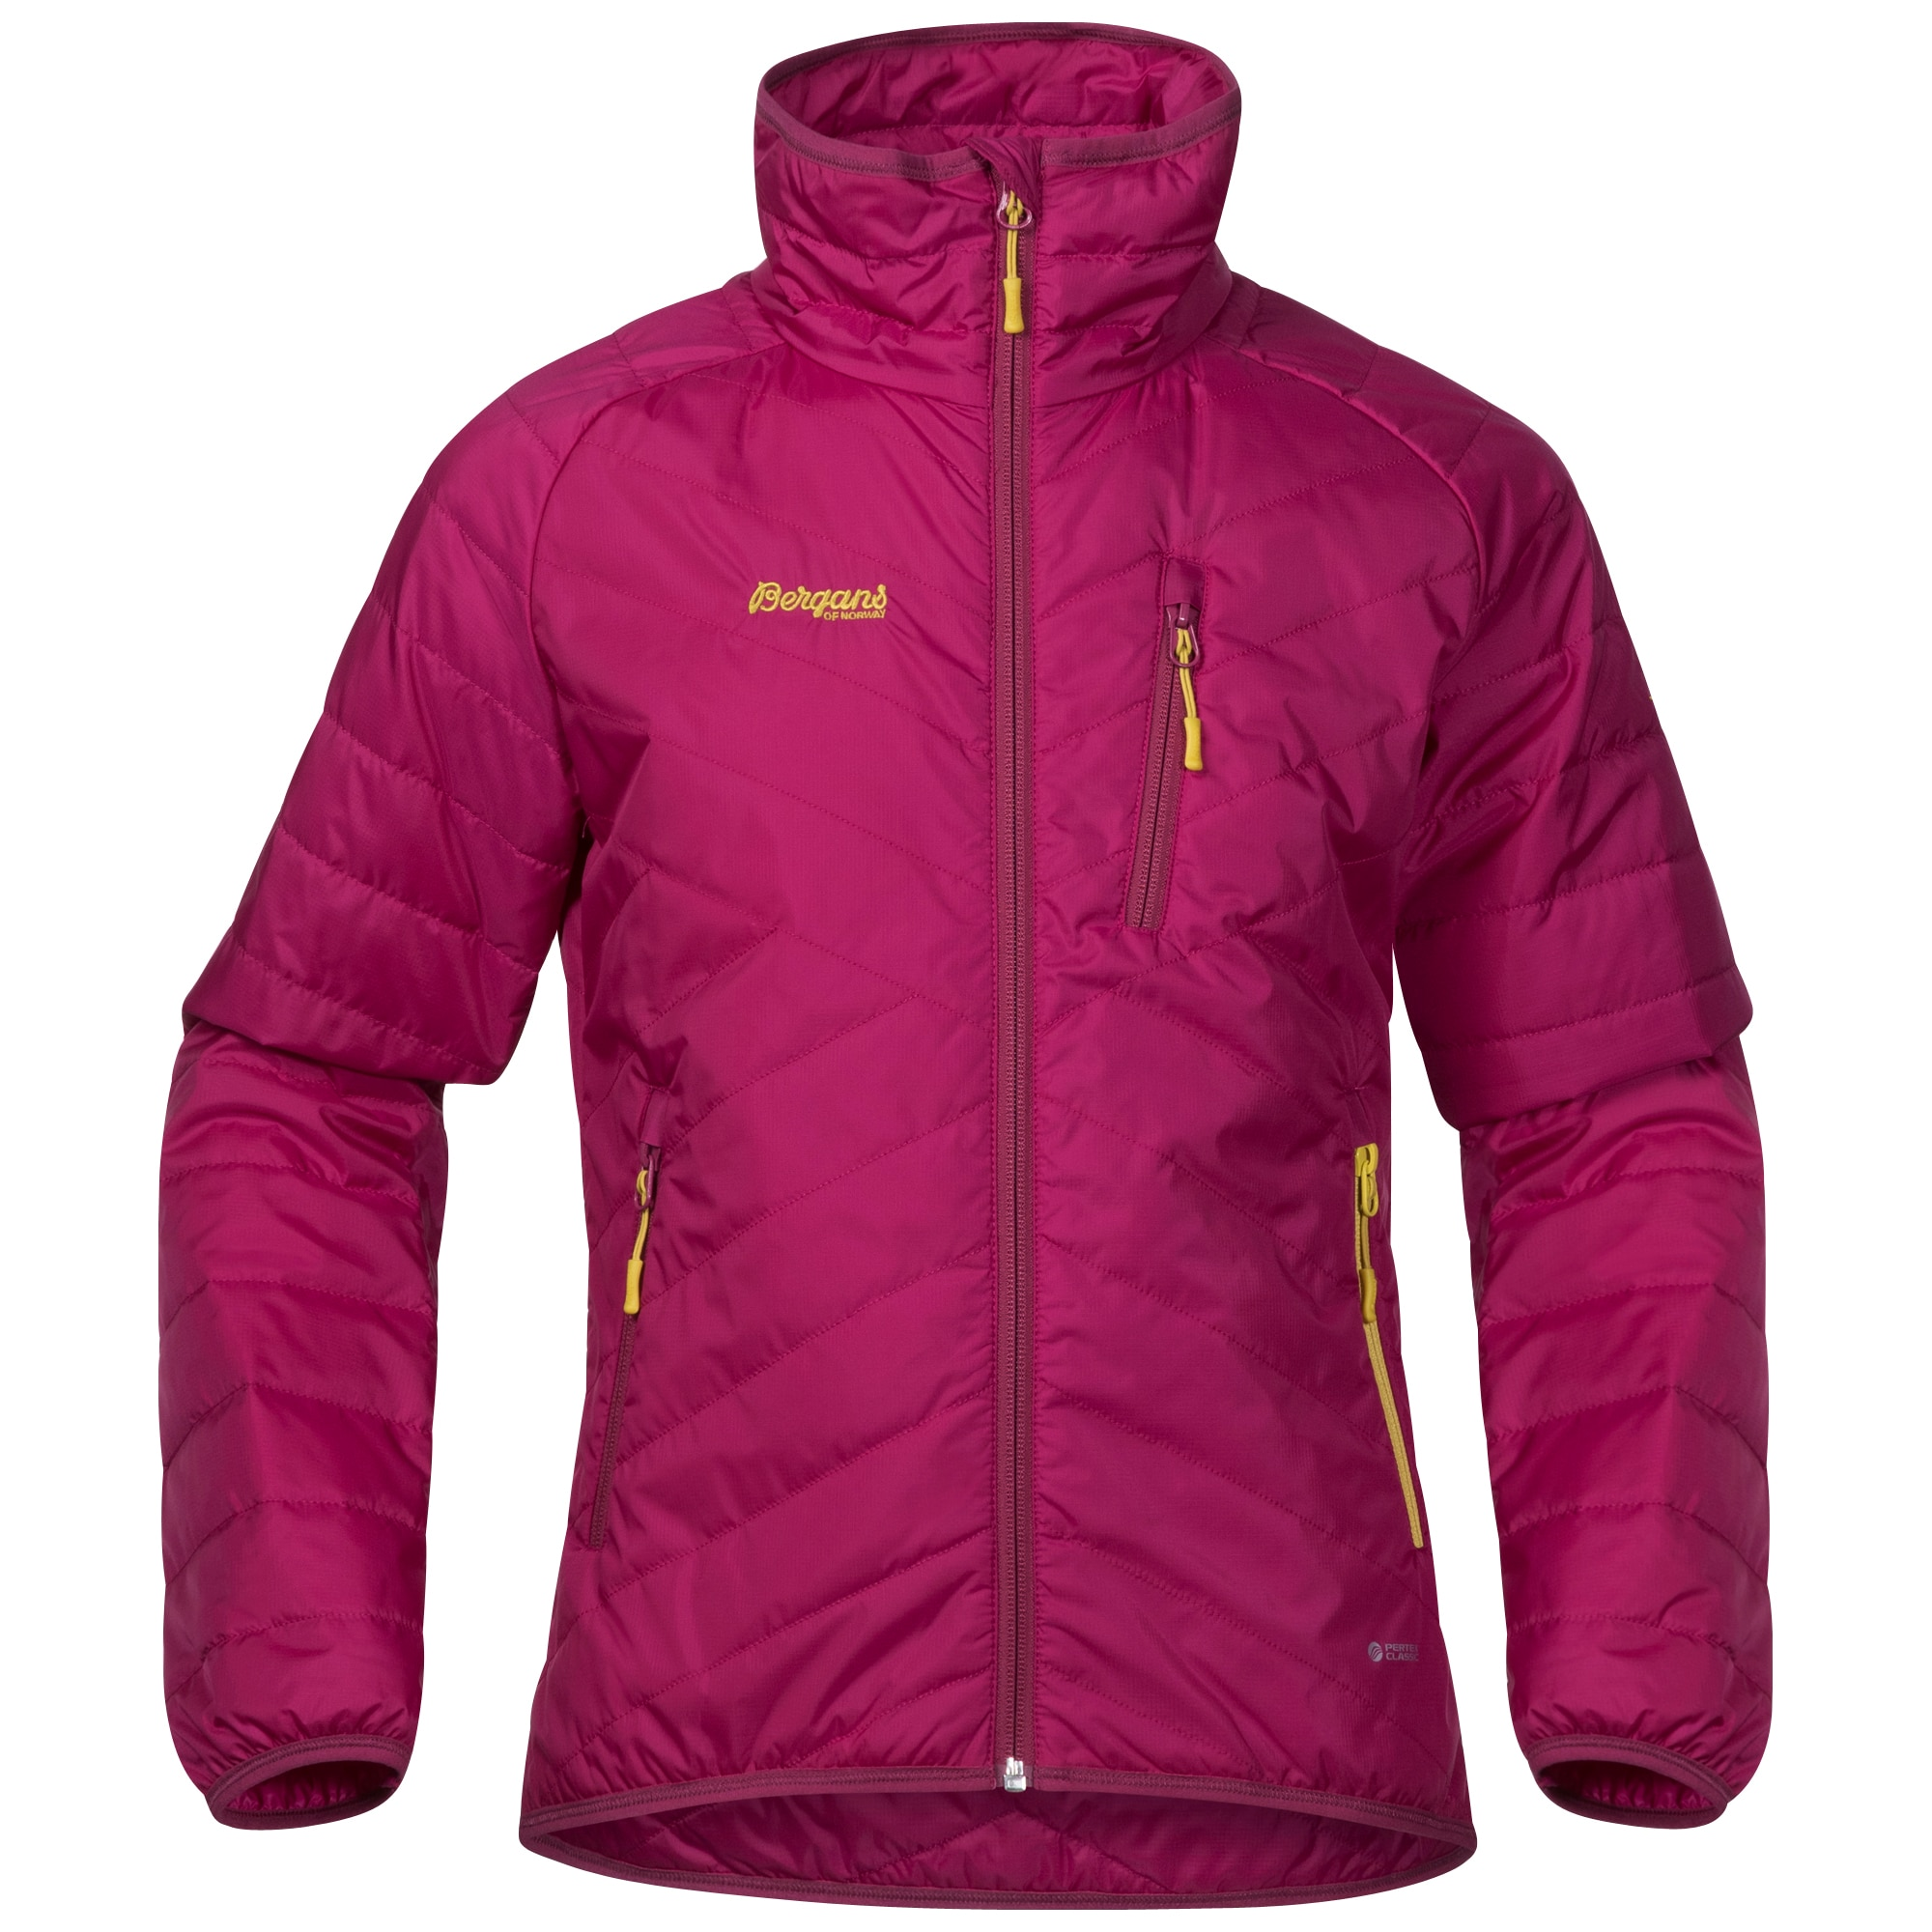 Josten Light Insulated Youth Girl Jacket